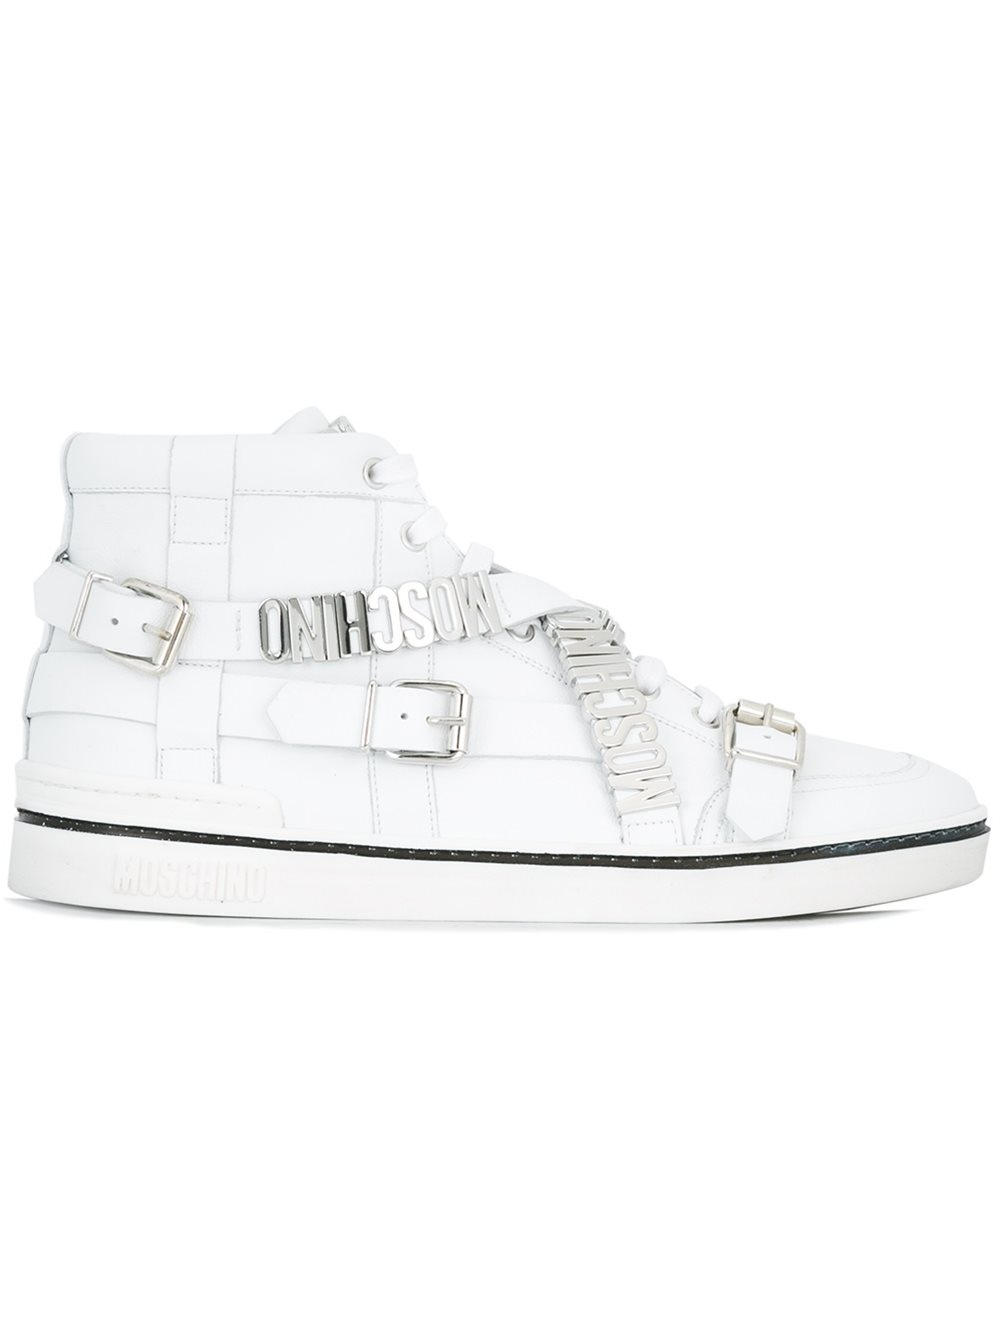 1000x1334 Get Discounts On Designer Moschino Men Shoes Sale Buy Cheap